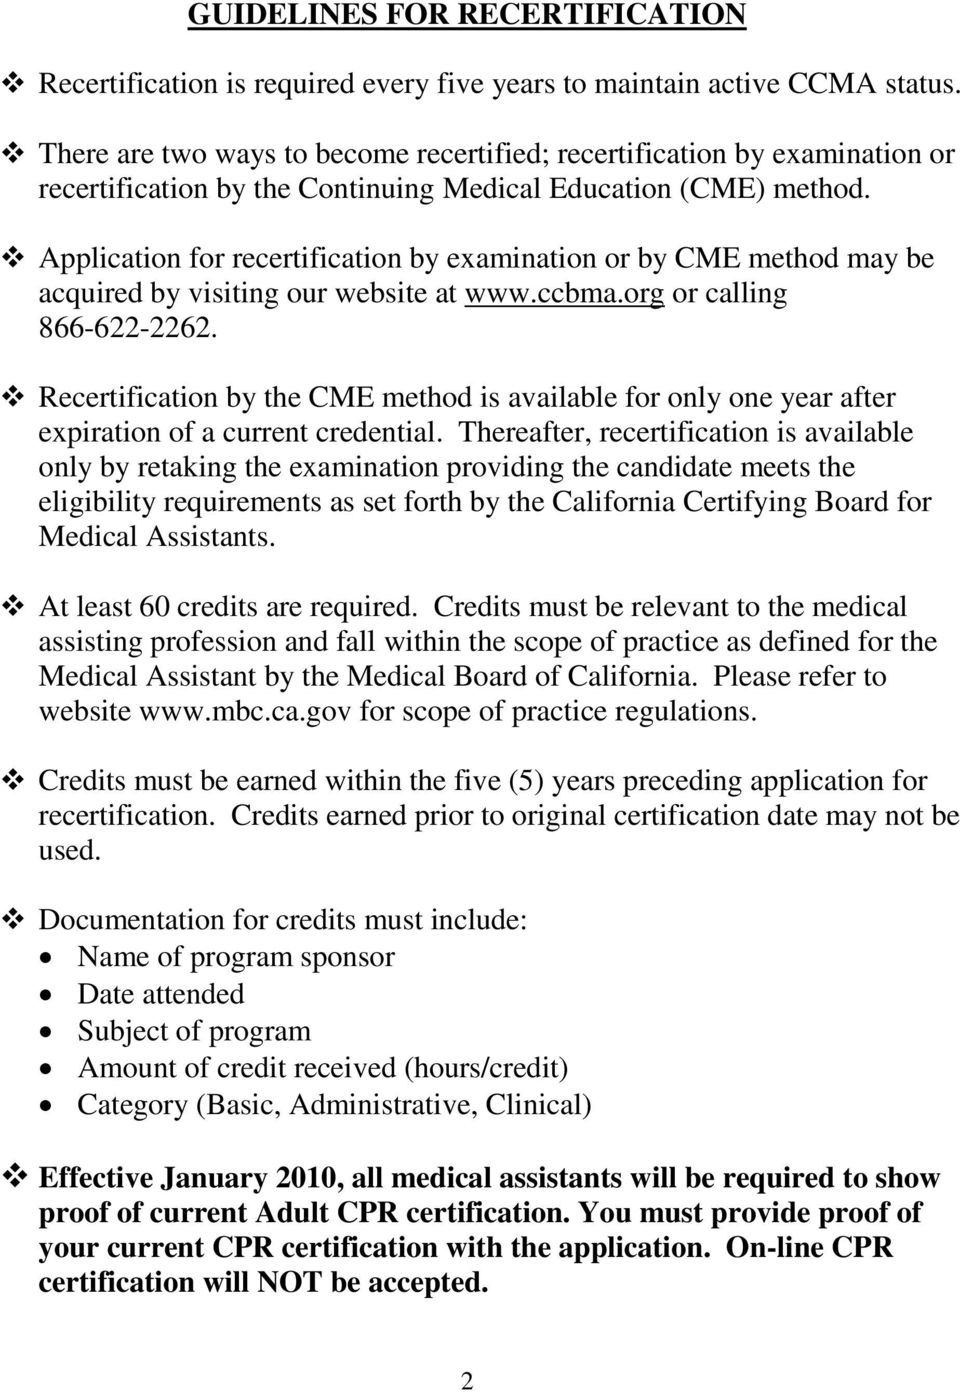 California Certifying Board For Medical Assistants Recertification